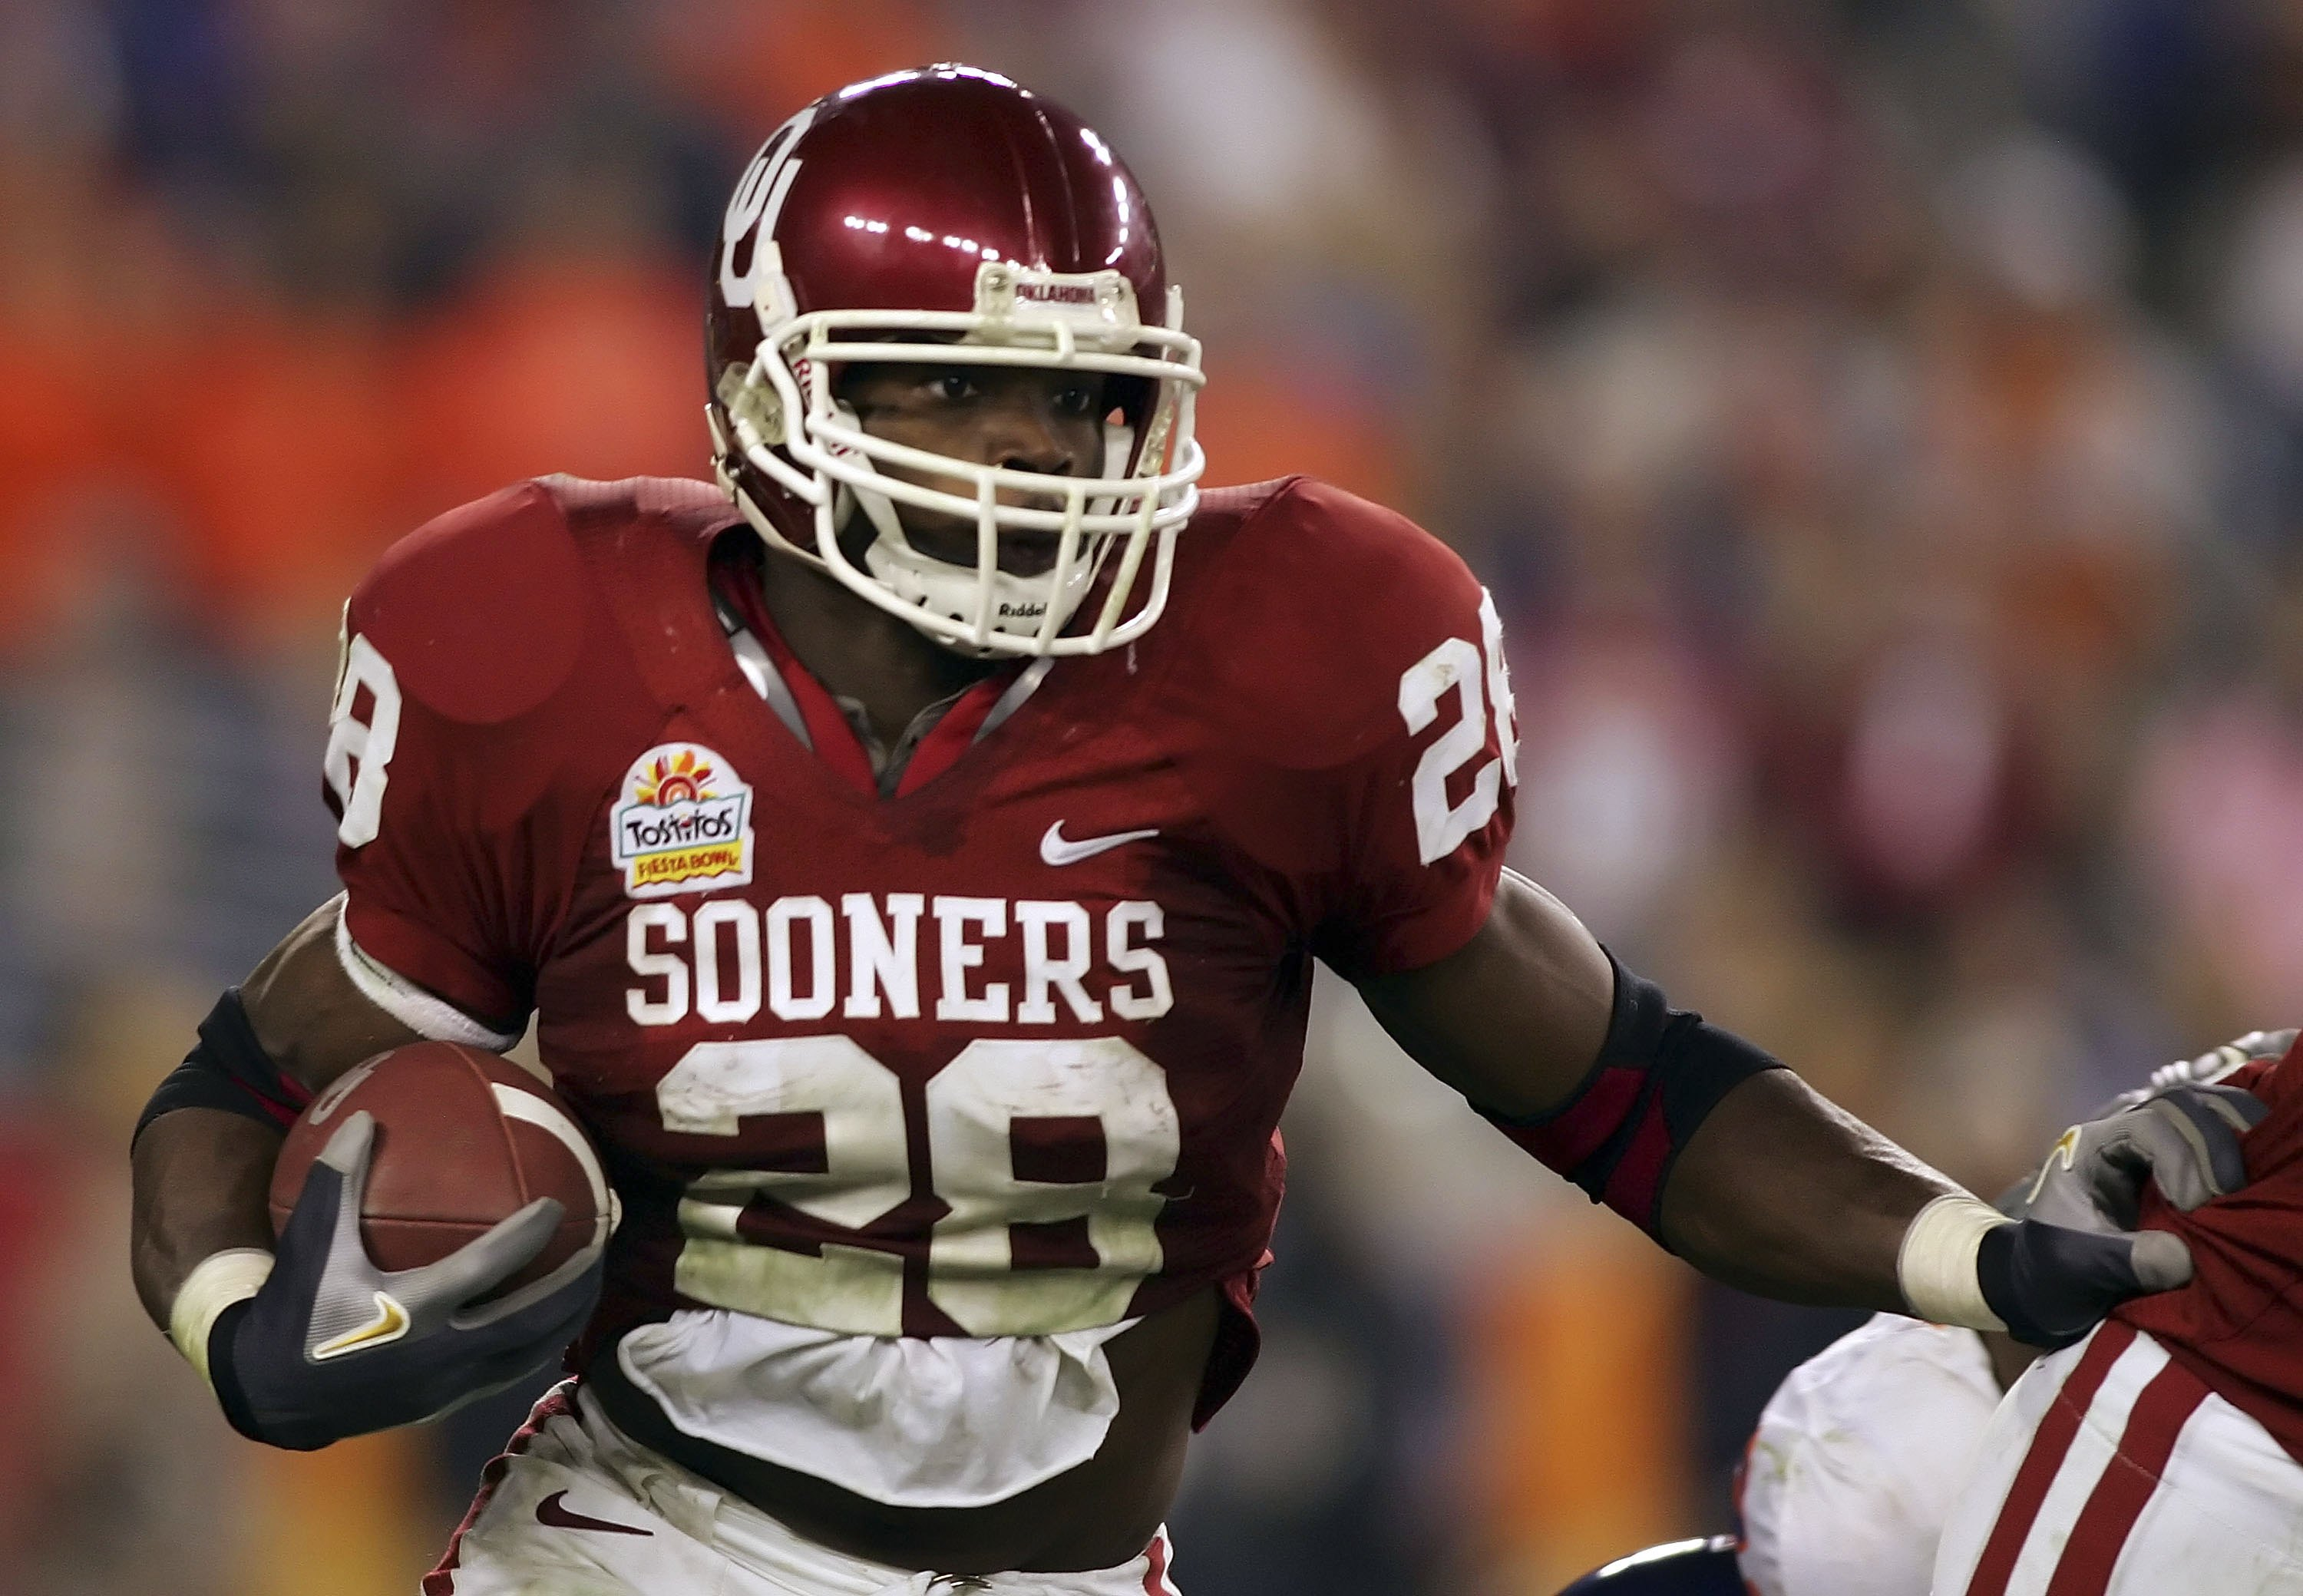 GLENDALE, AZ - JANUARY 1:  Running back Adrian Peterson #28 of the Oklahoma Sooners runs the football in the third quarter of the Tostito's Fiesta Bowl against the Boise State Broncos at University of Phoenix Stadium January 1, 2007 in Glendale, Arizona.